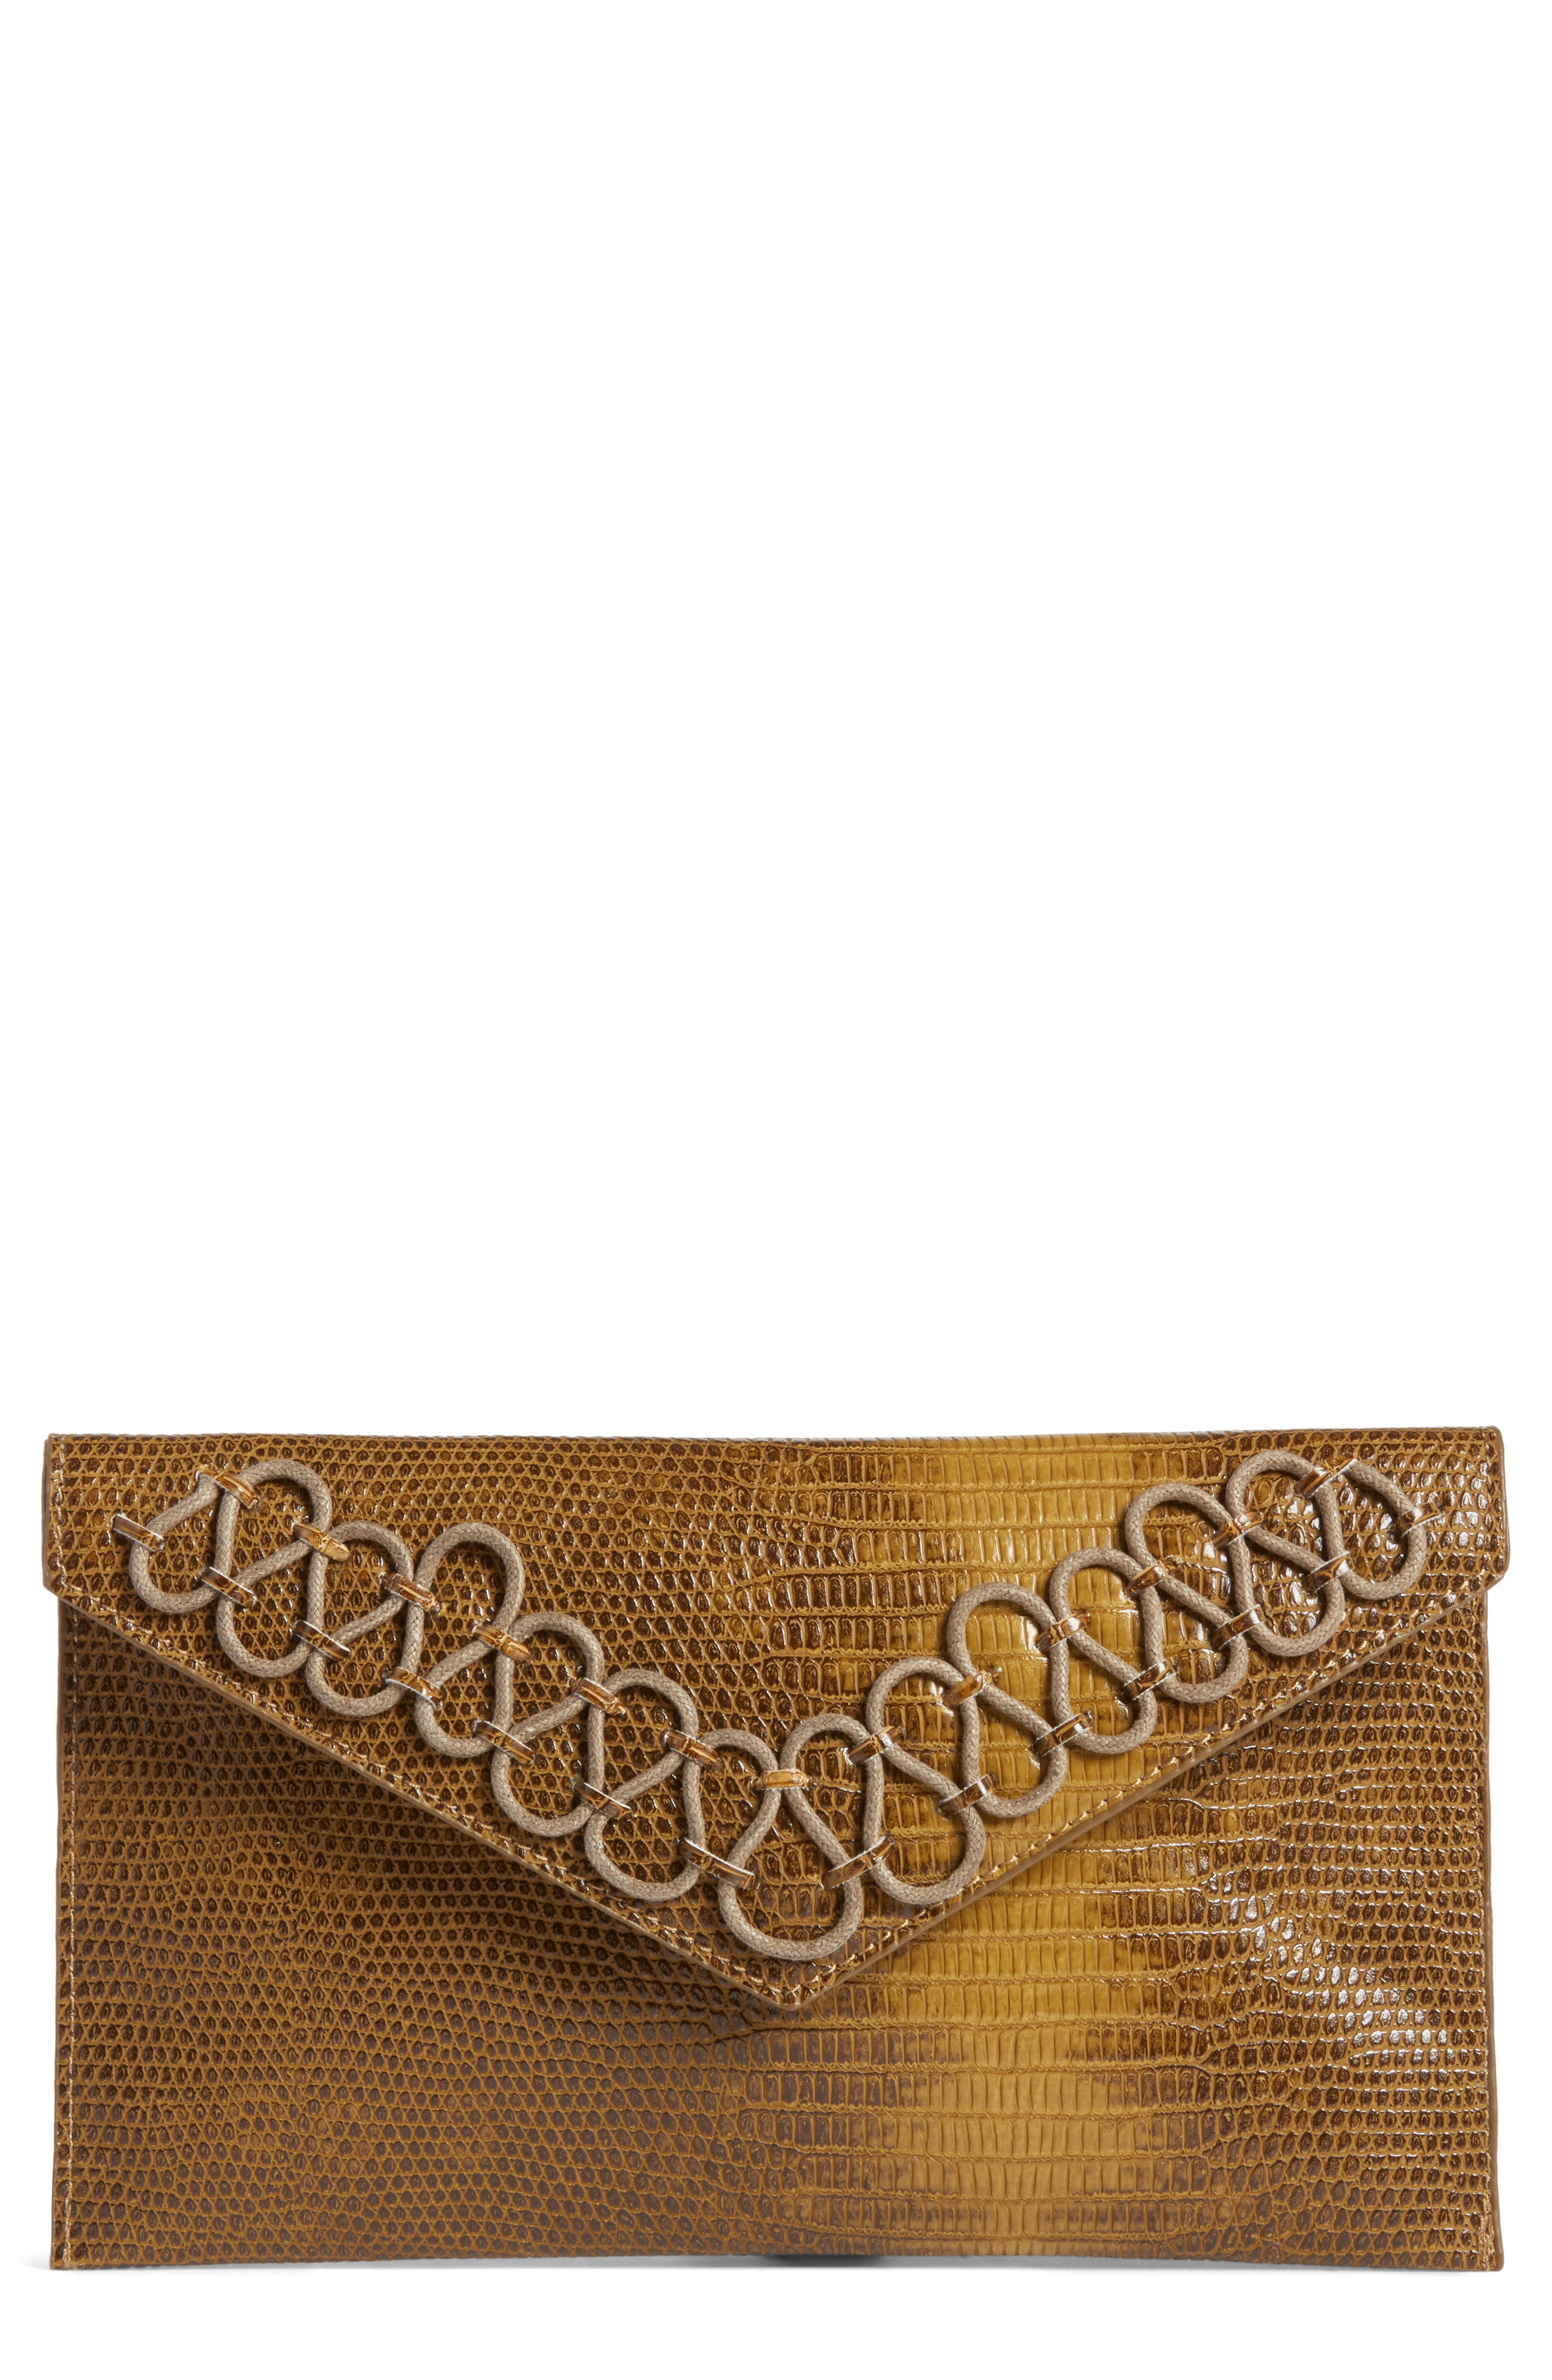 Danielle Nicole Hutton Embossed Faux Leather Clutch